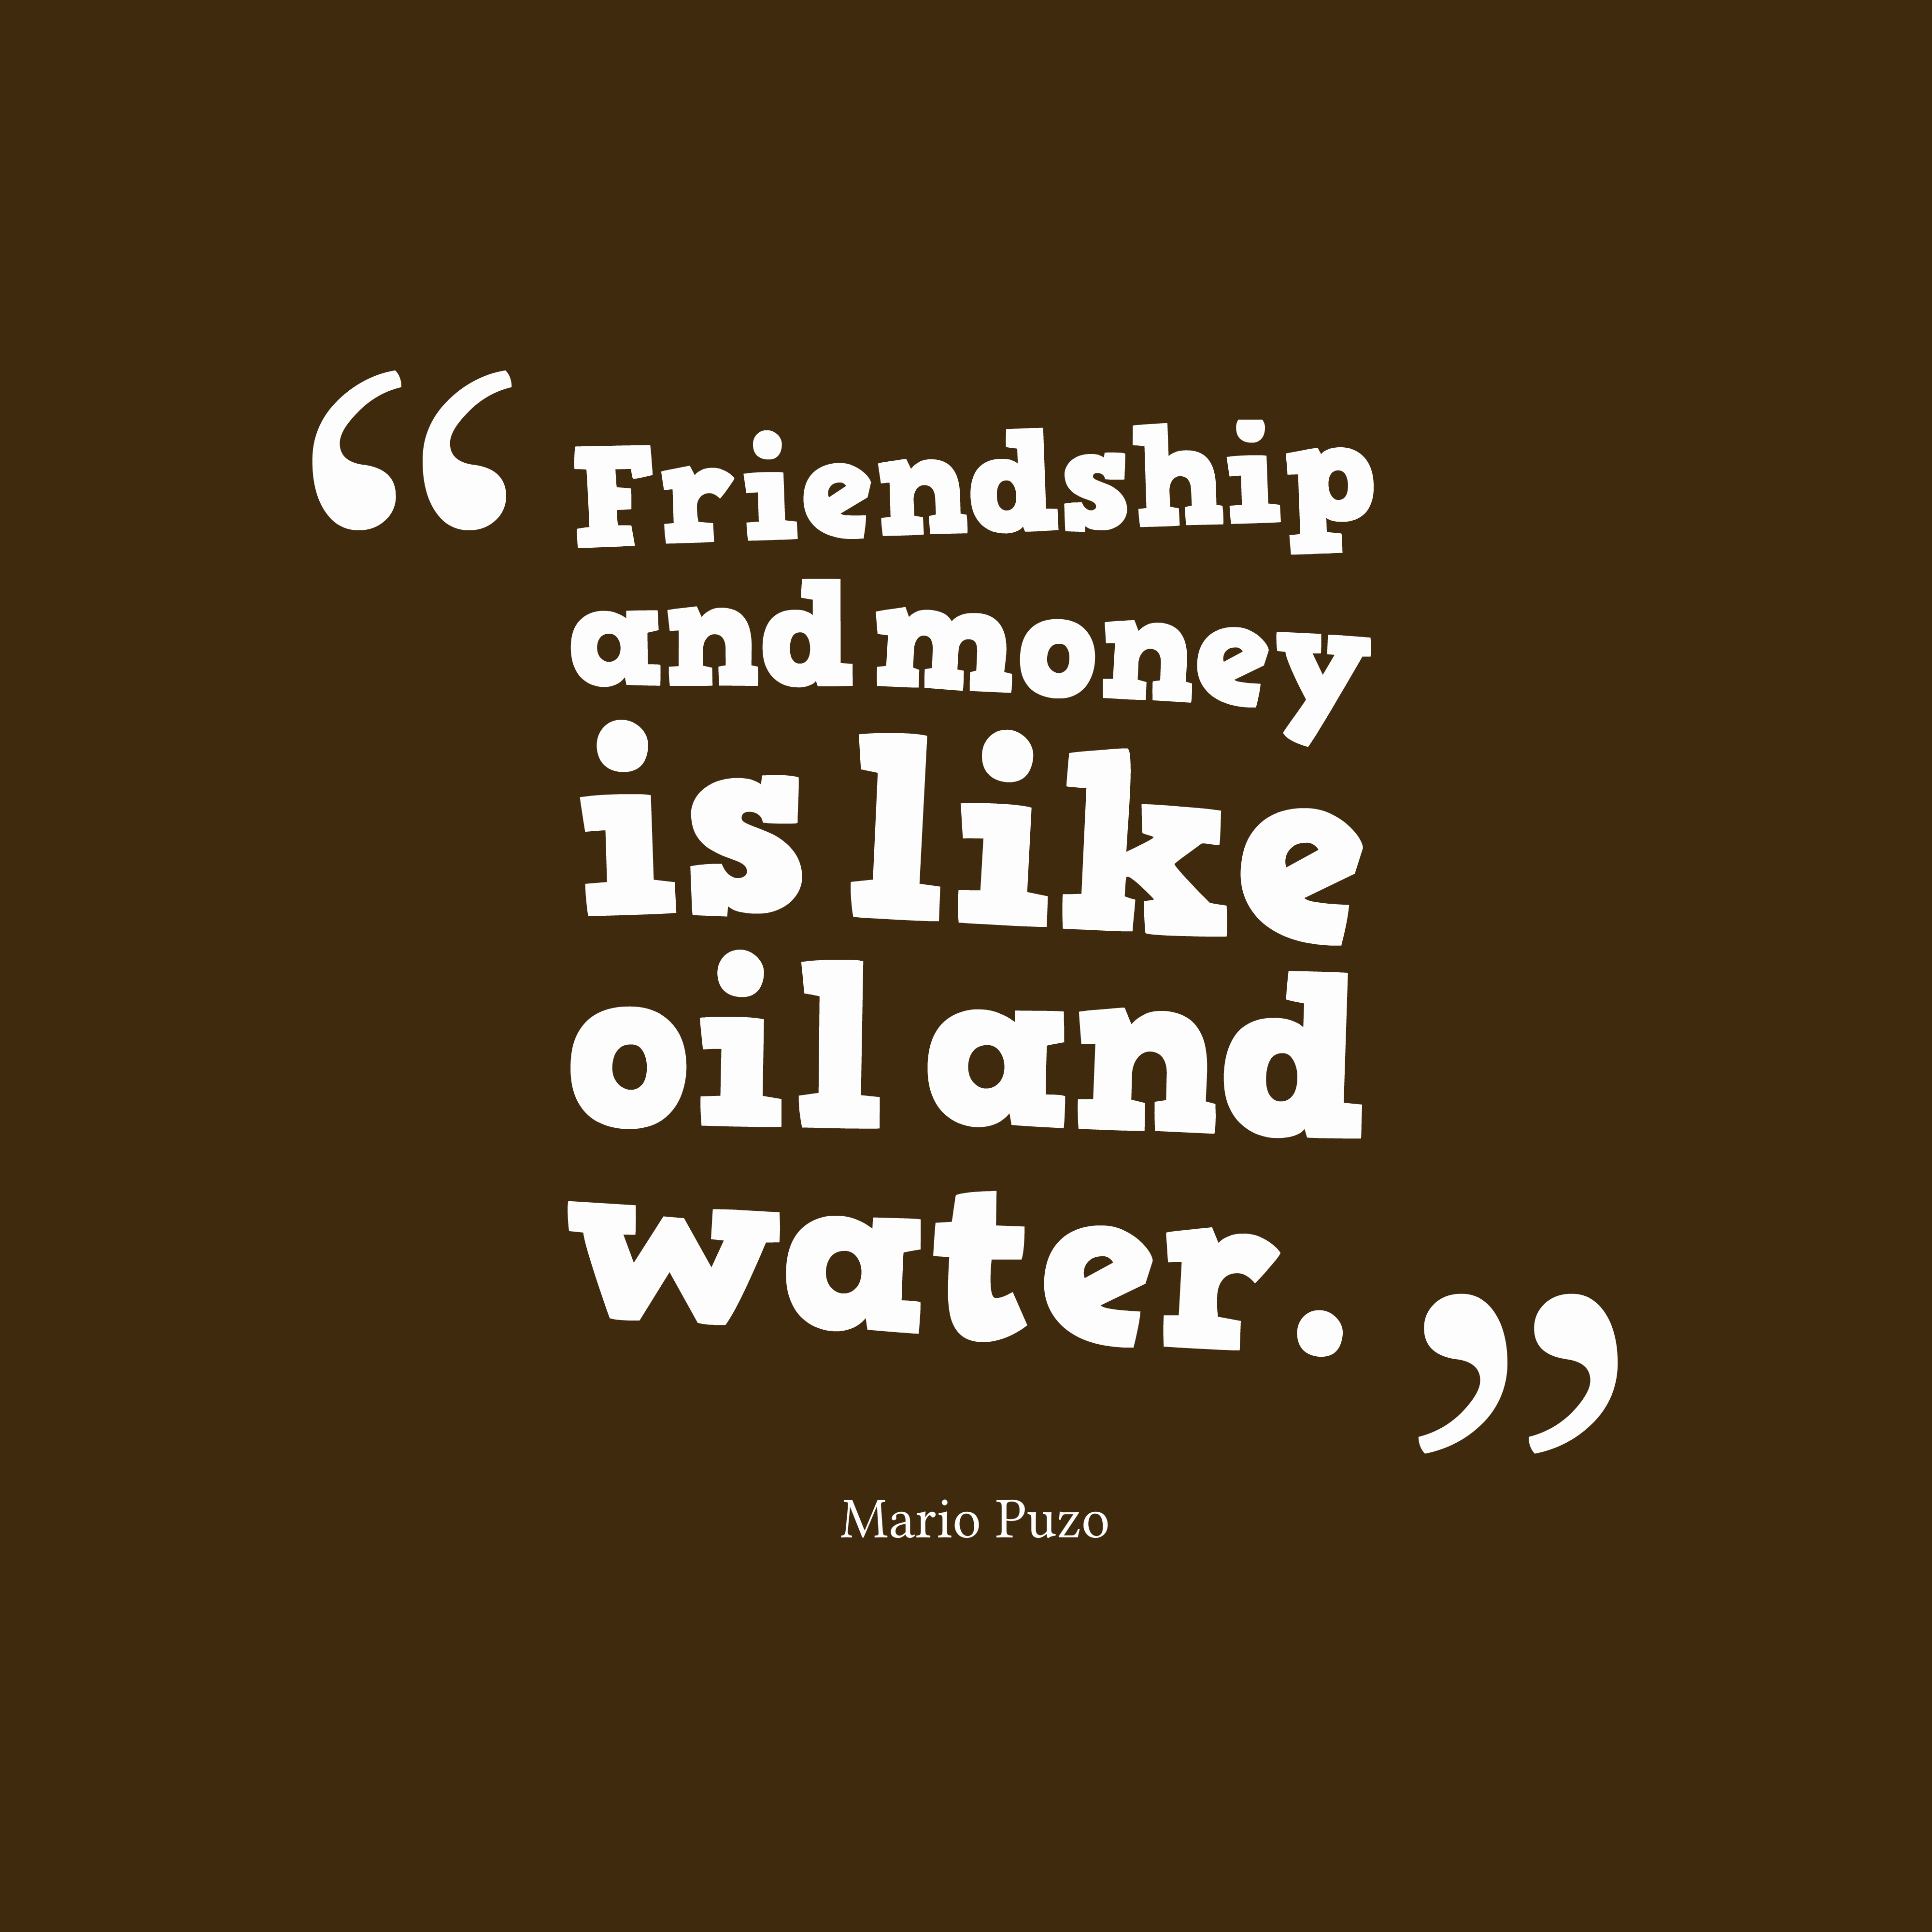 friendship-and-money-is-like-oil-and-water-money-quote